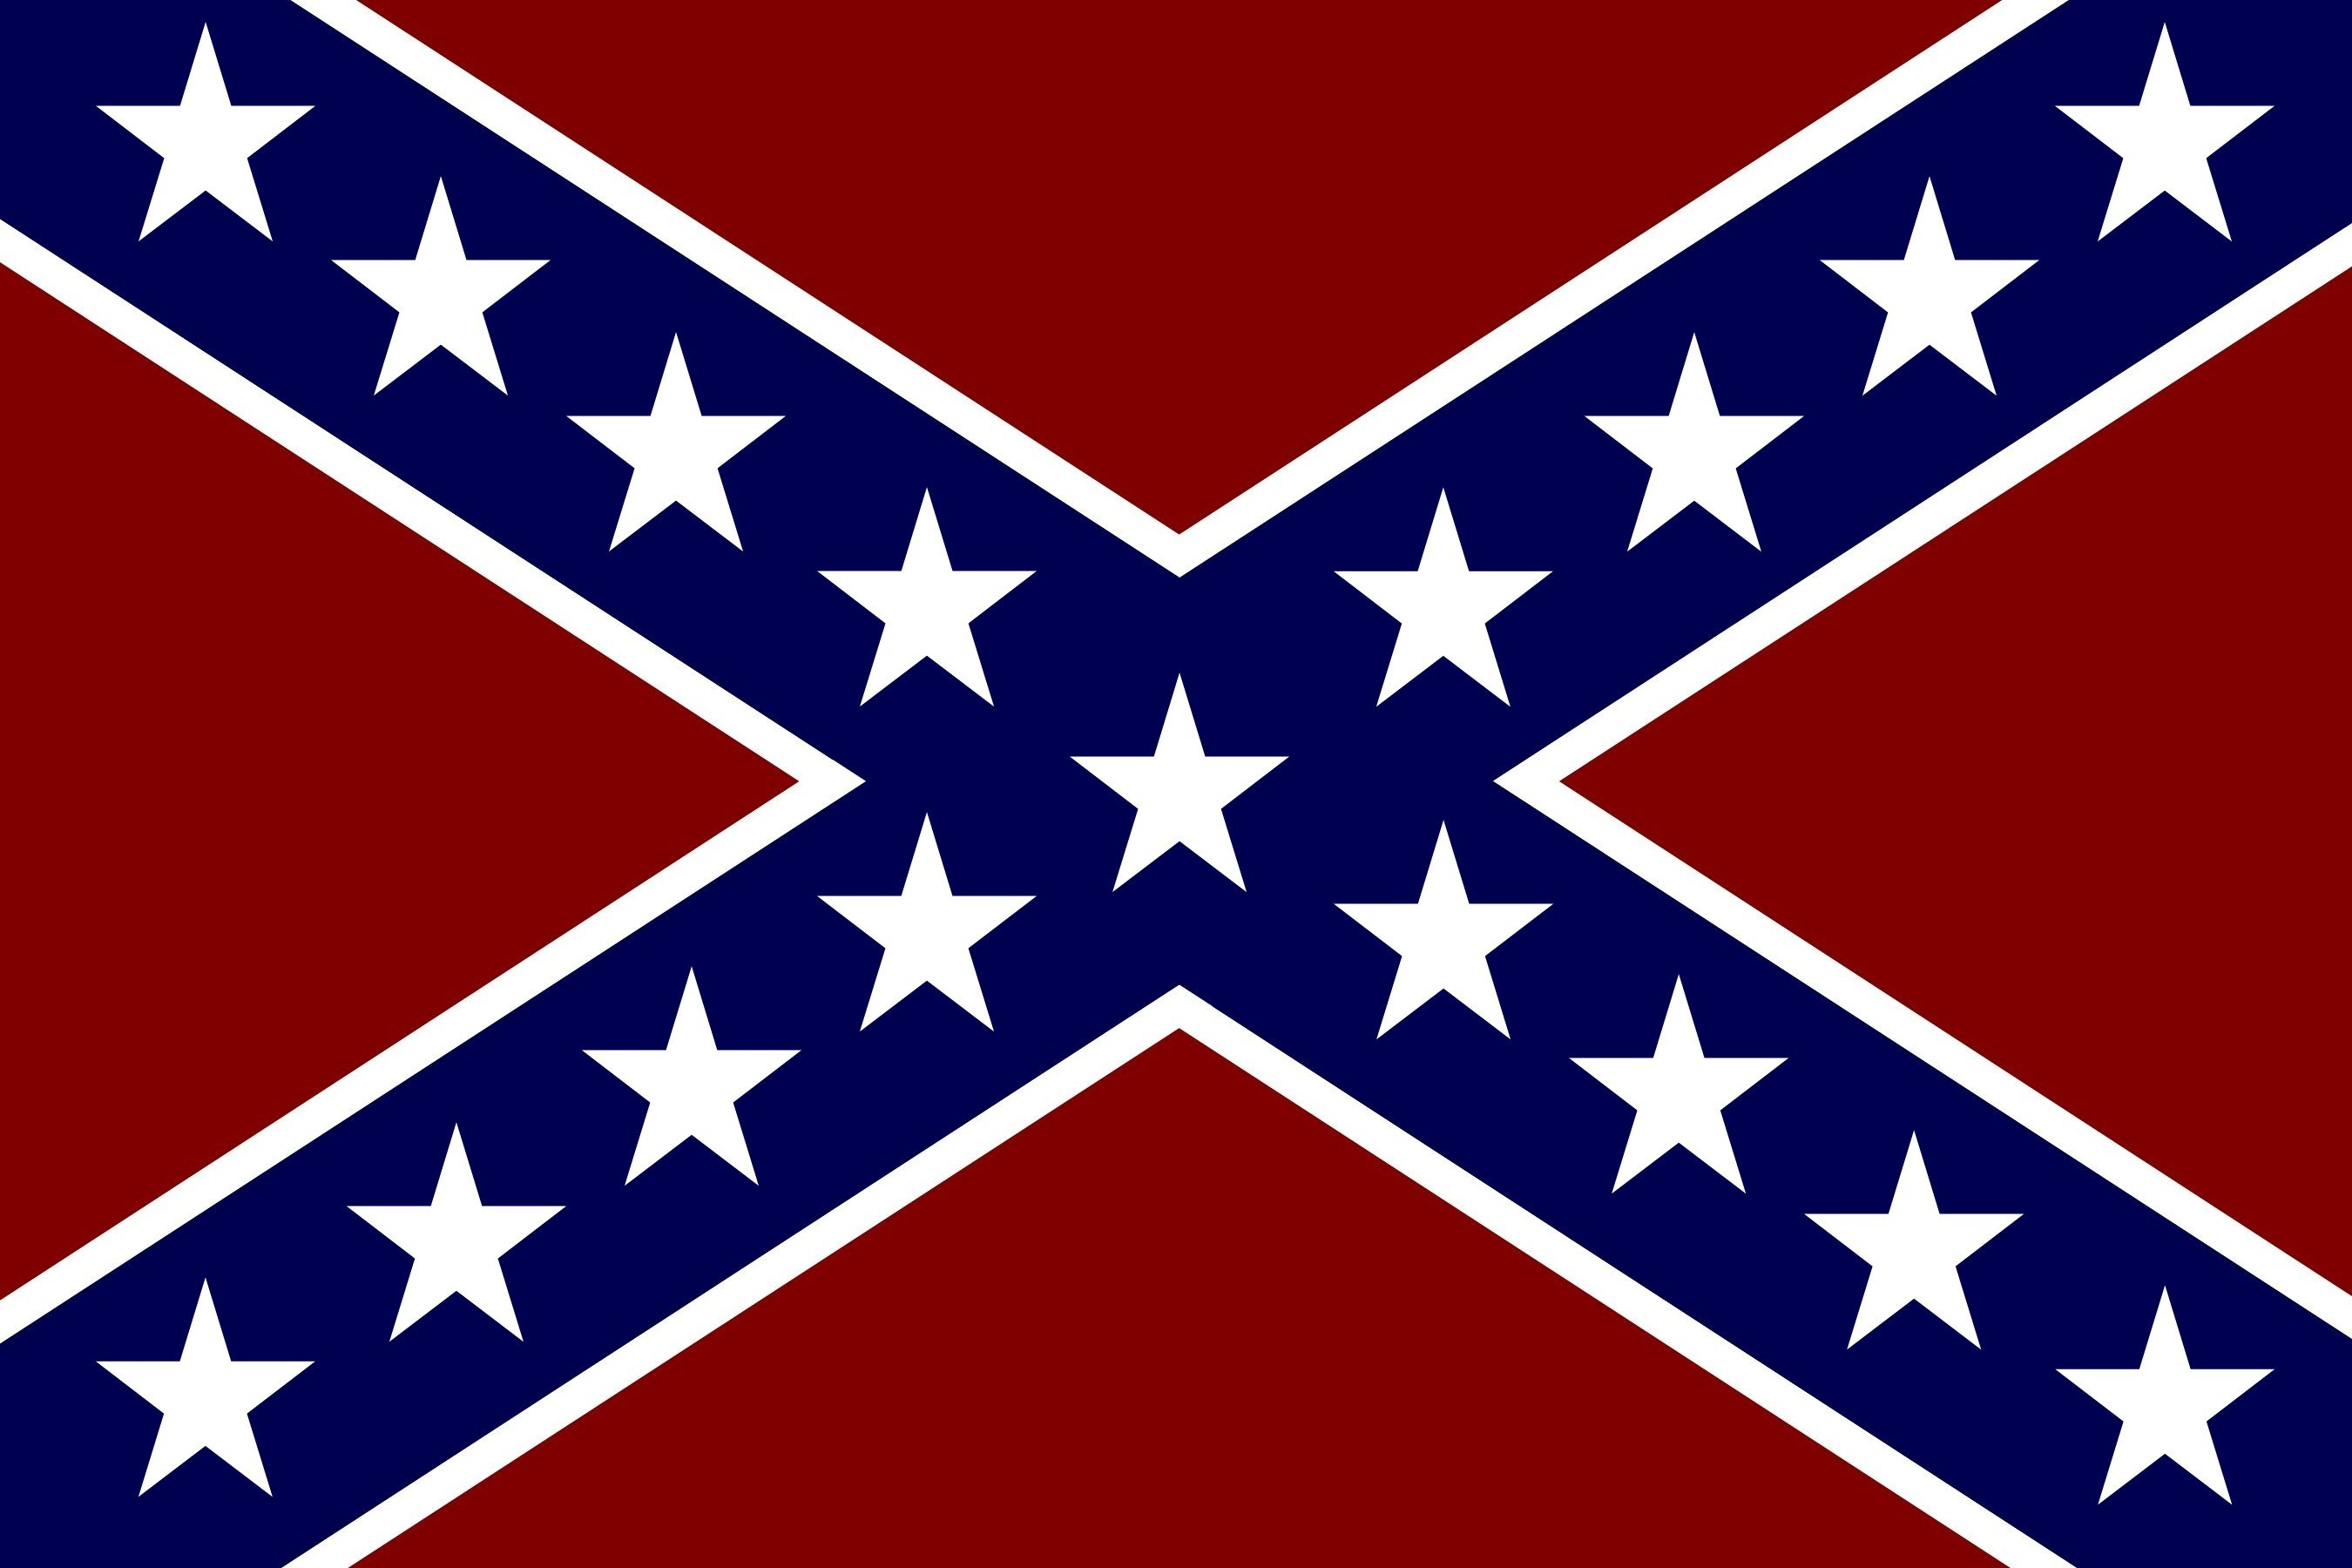 Confederate Flag Wallpaper for iPhone 2700x1800